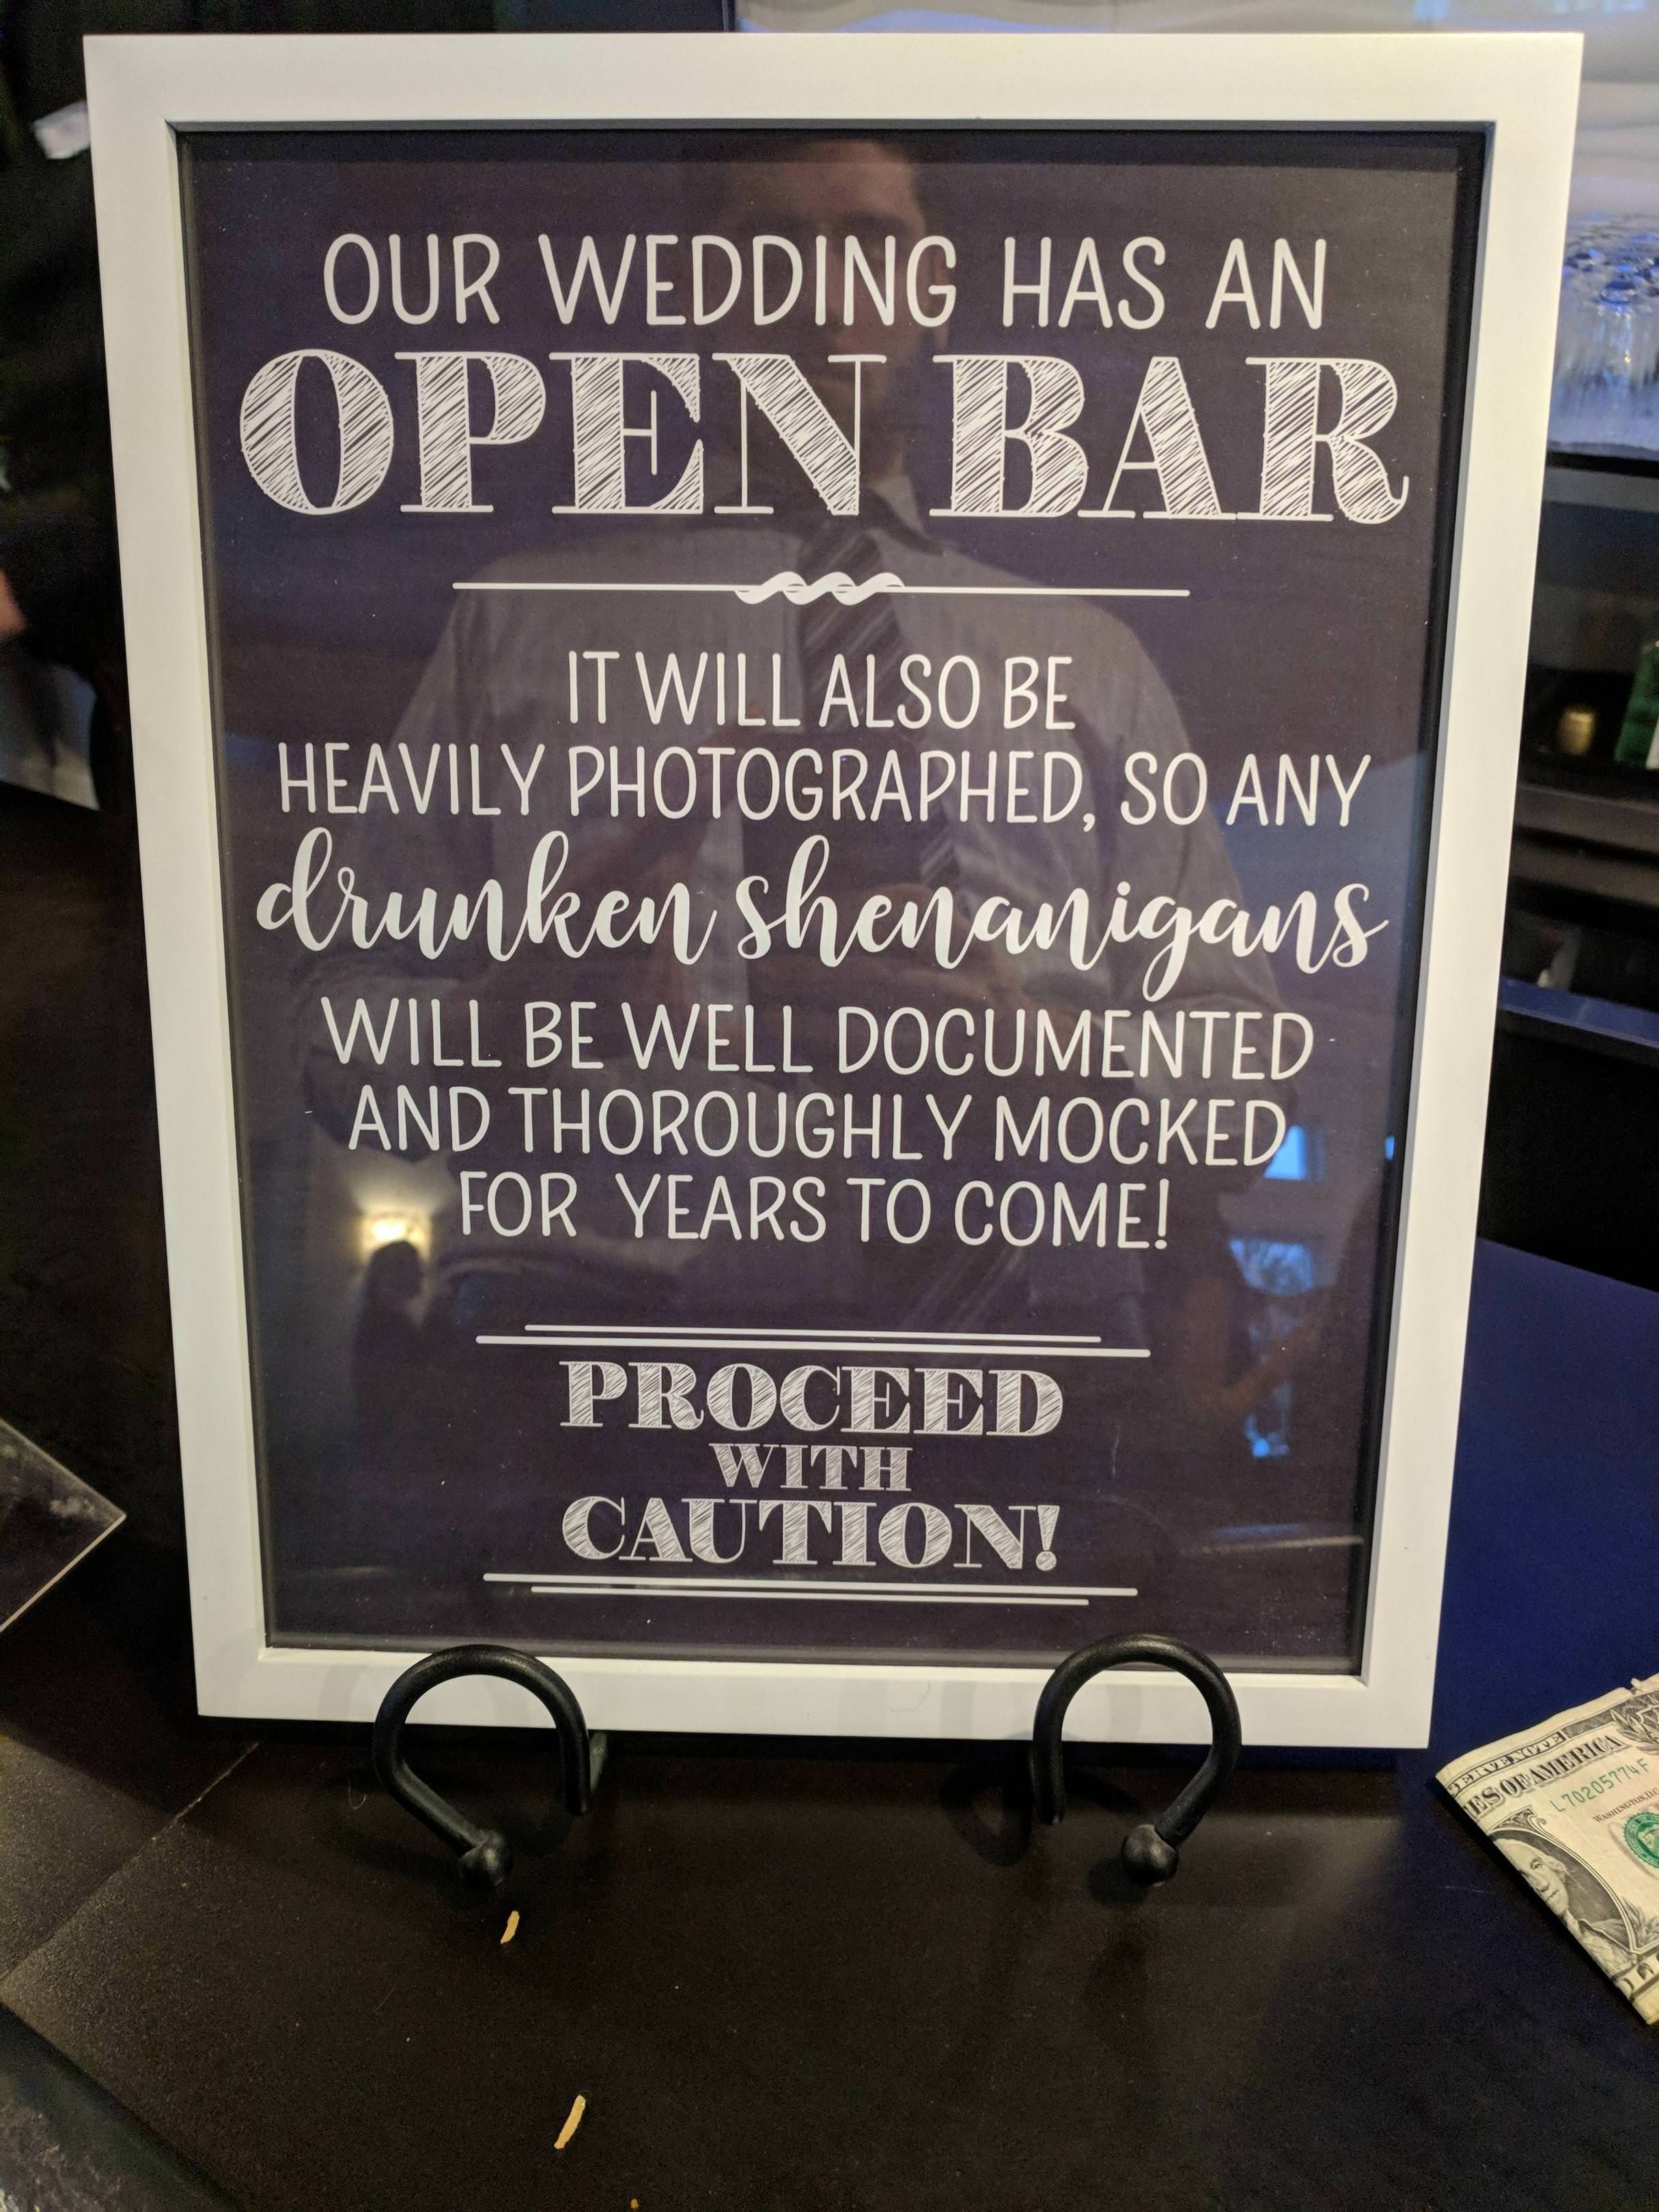 Open bar, proceed with caution.